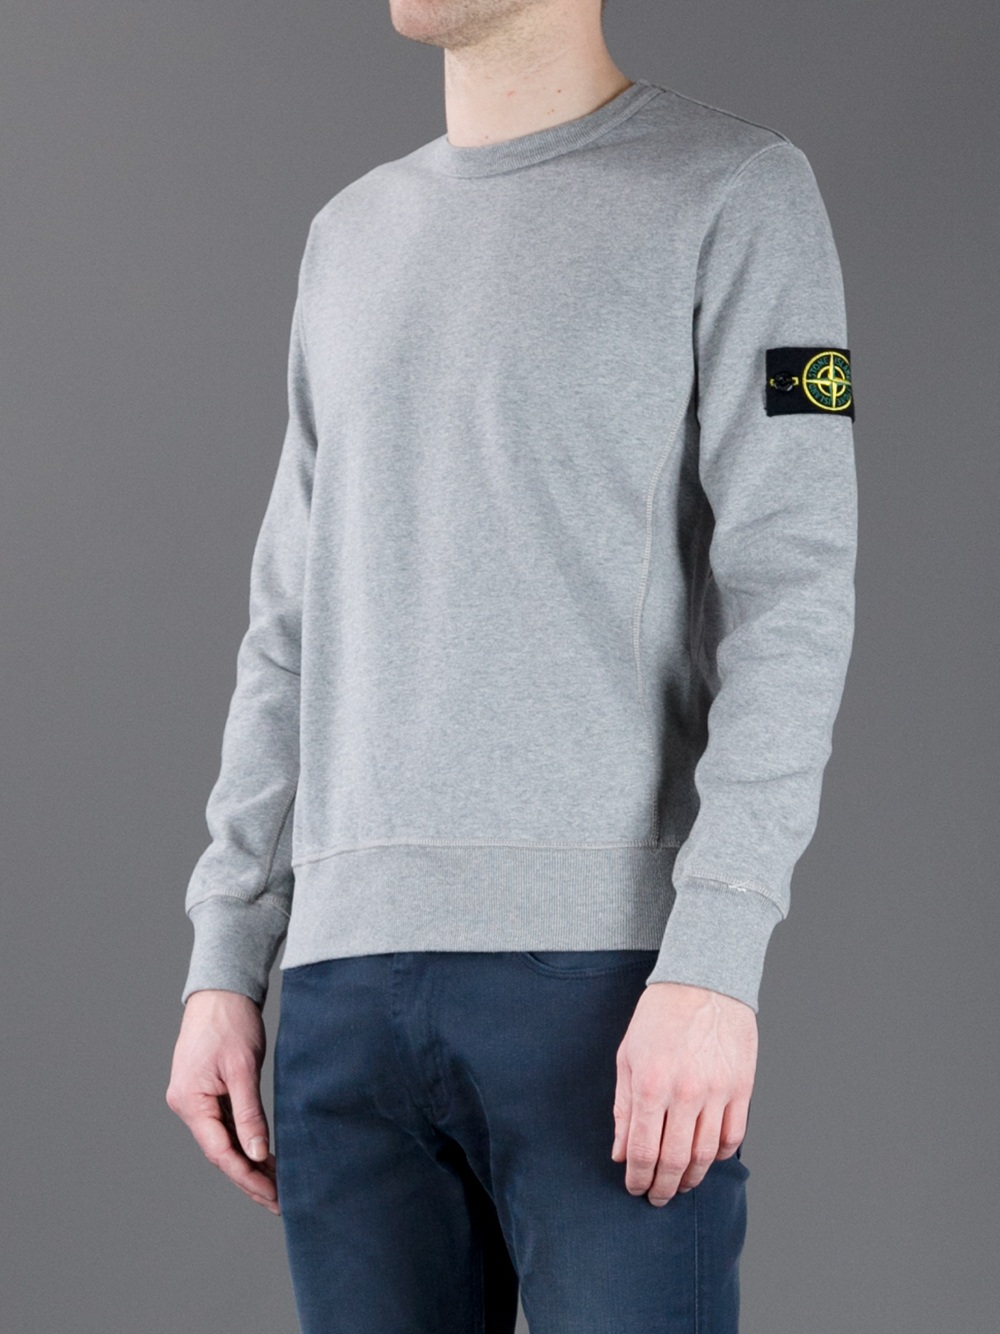 stone island hoodie in grey marl. Black Bedroom Furniture Sets. Home Design Ideas